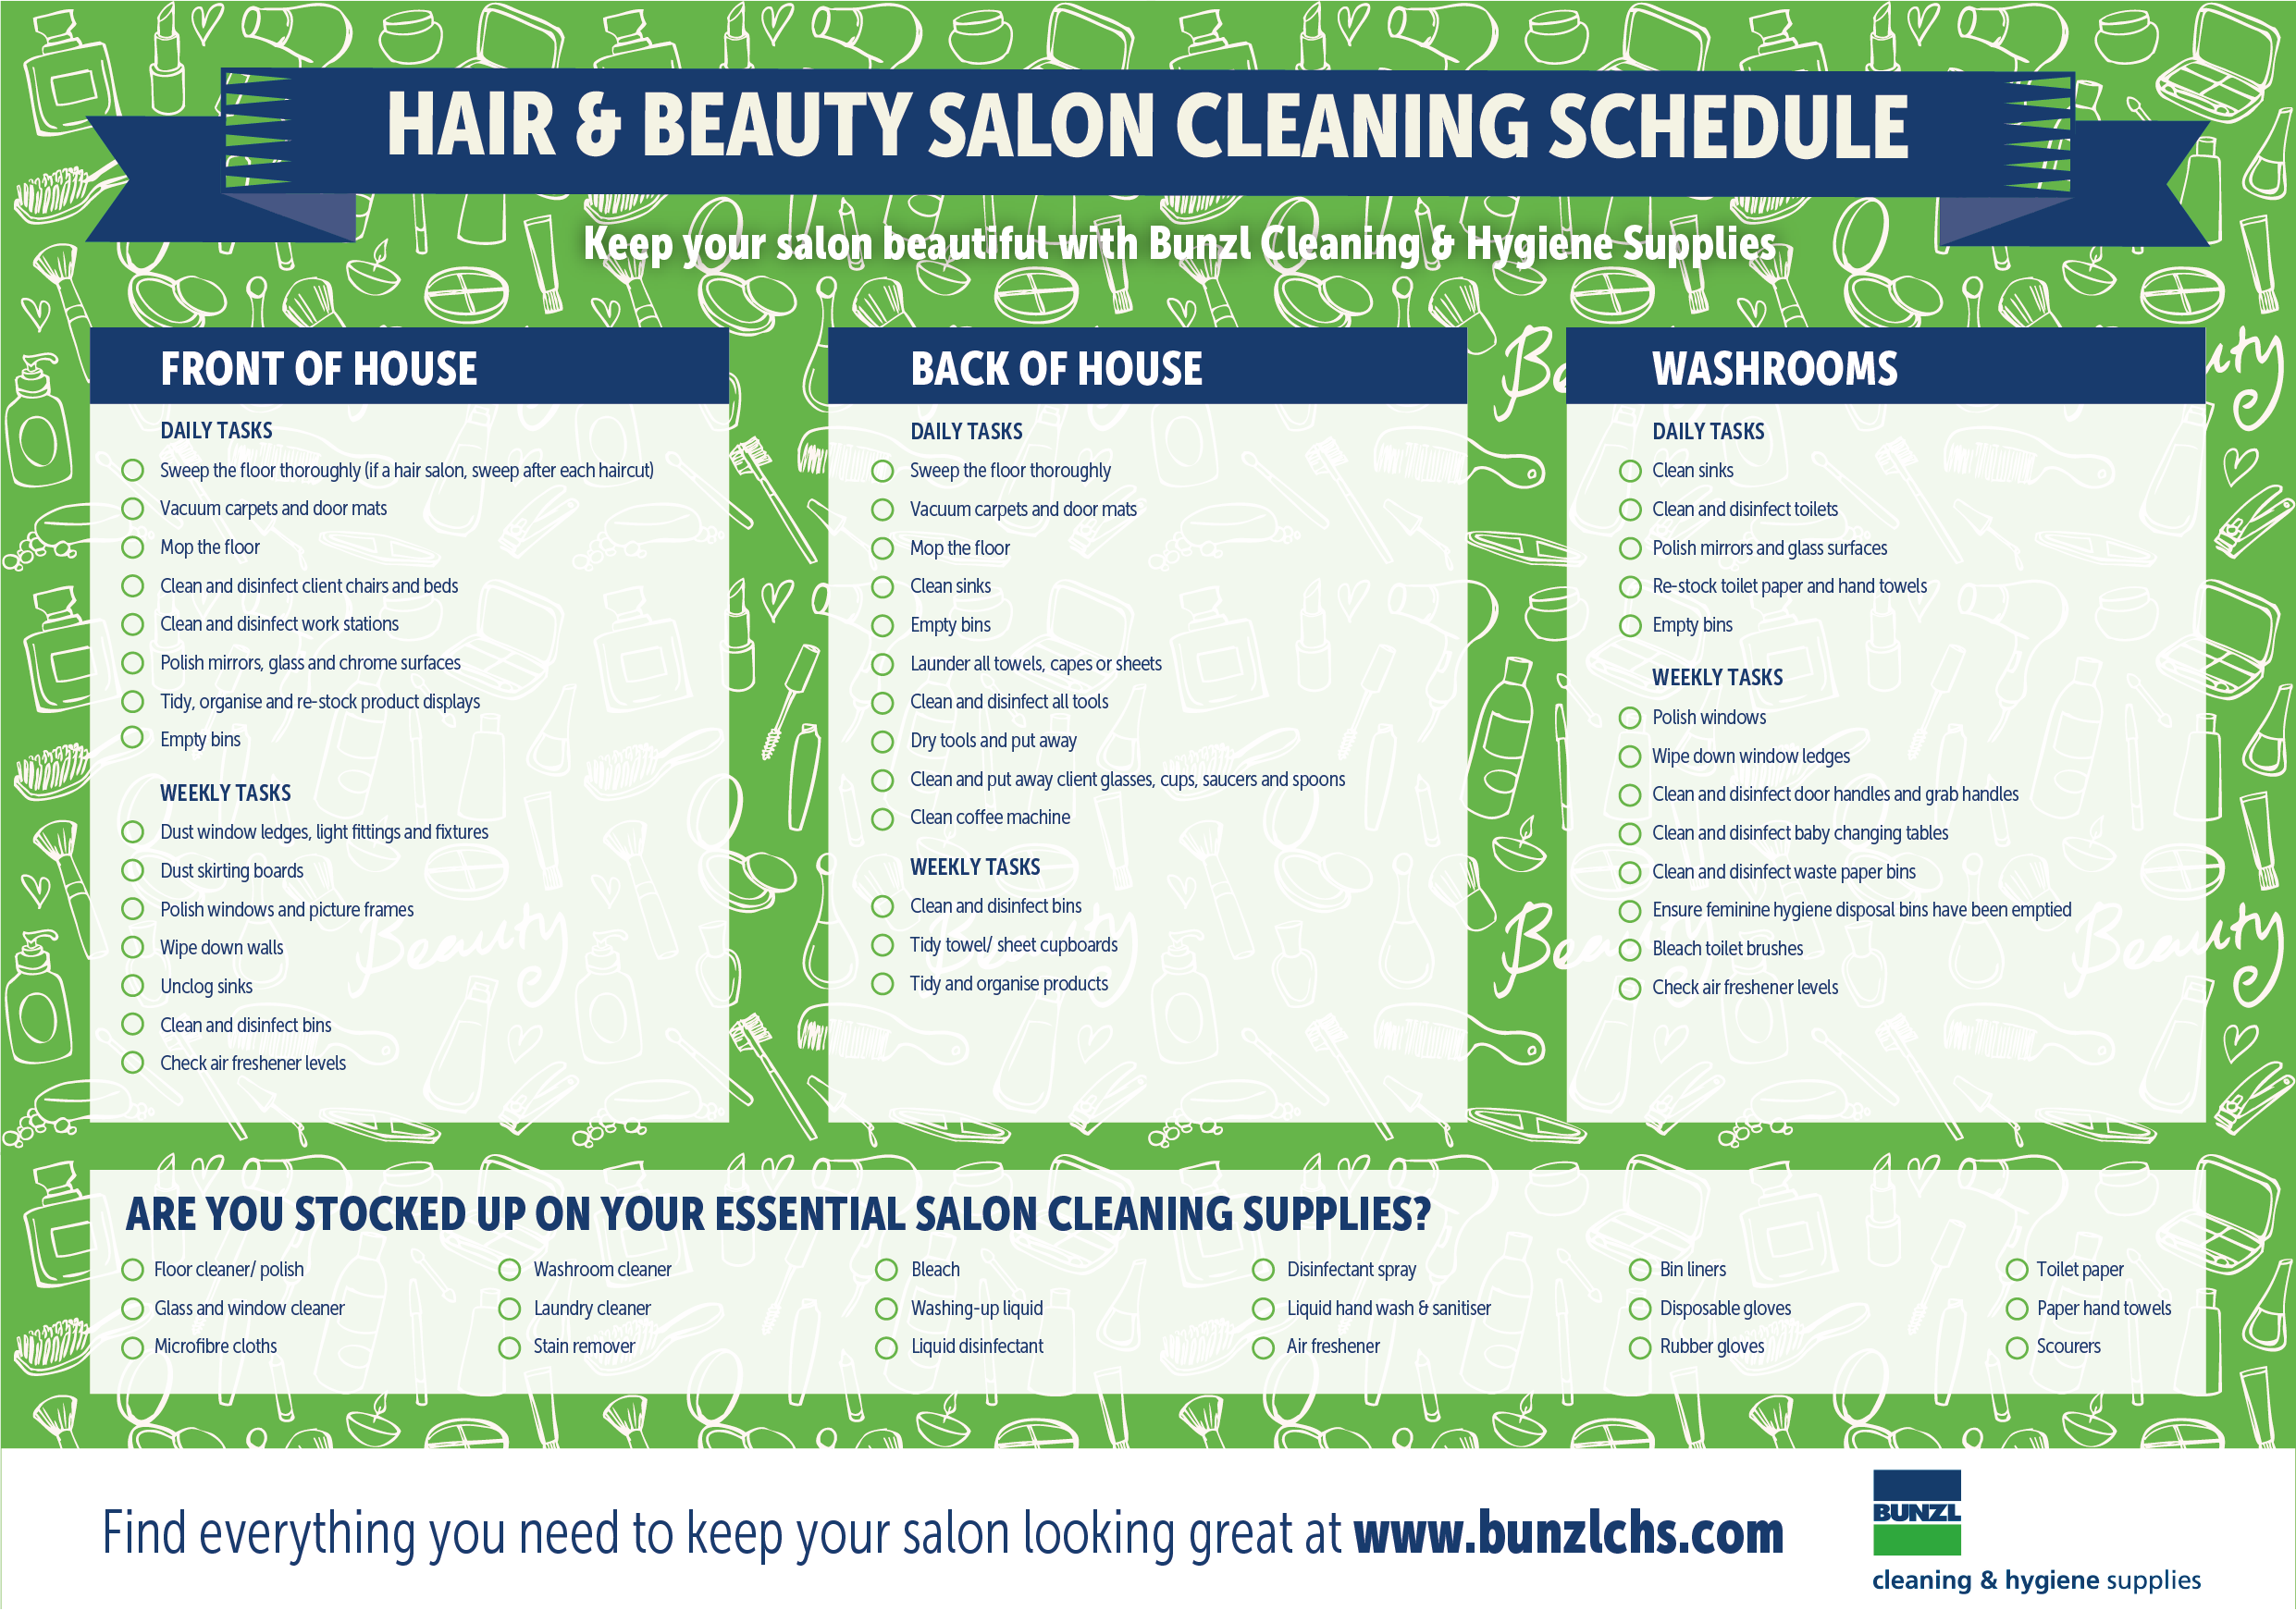 Download Cleaning Schedule And Supply Template For Hair And Beauty